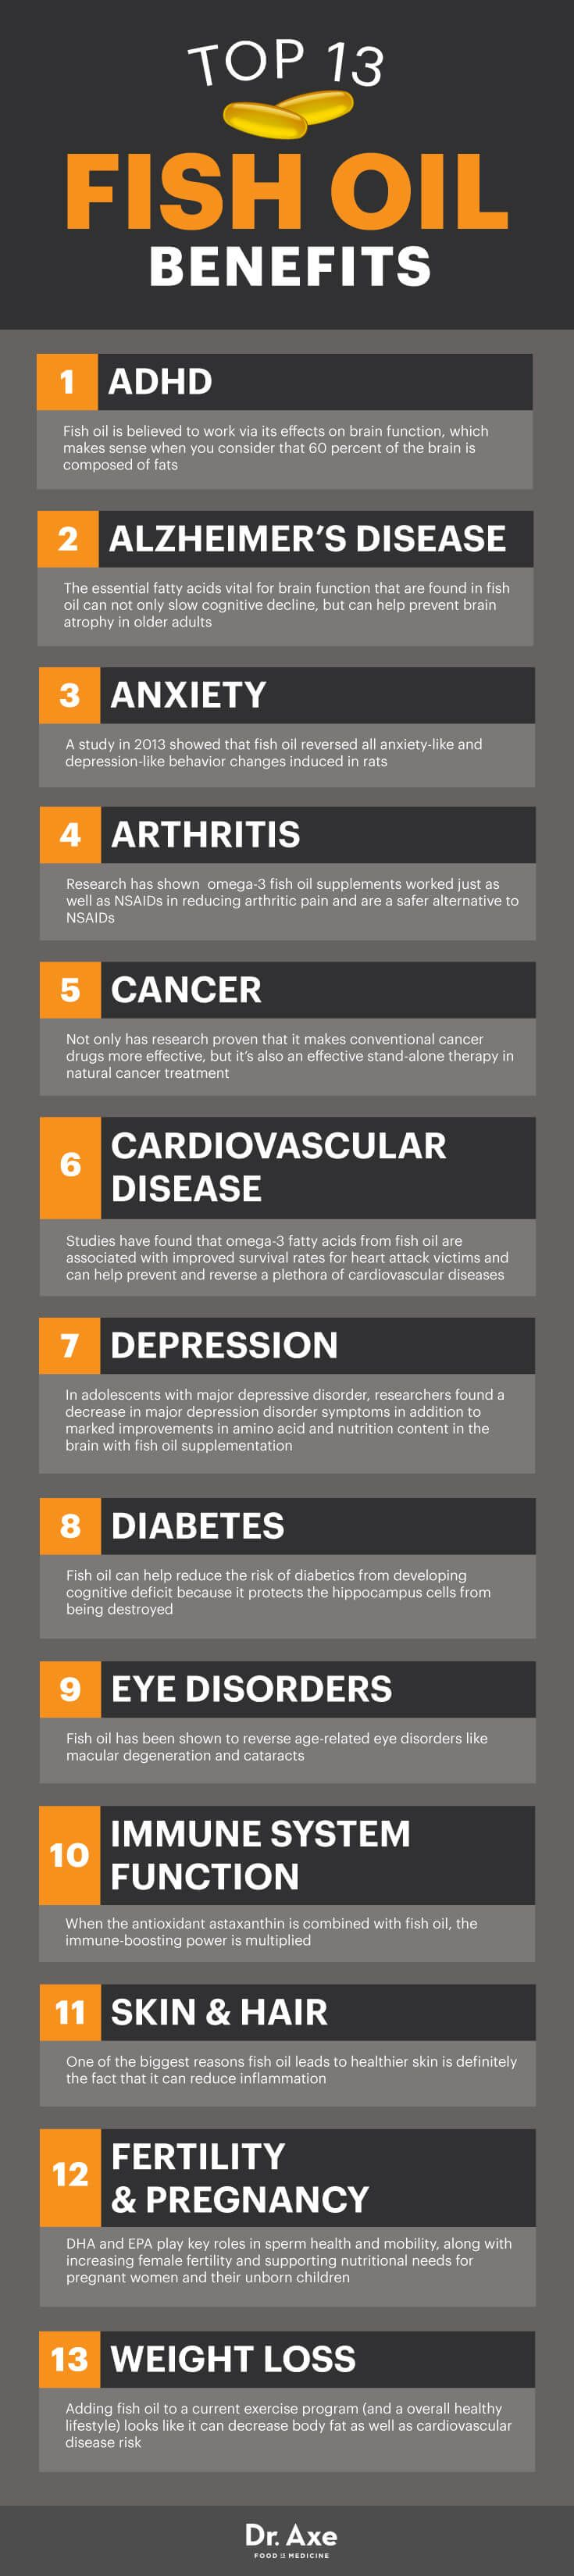 Fish oil benefits - Dr. Axe